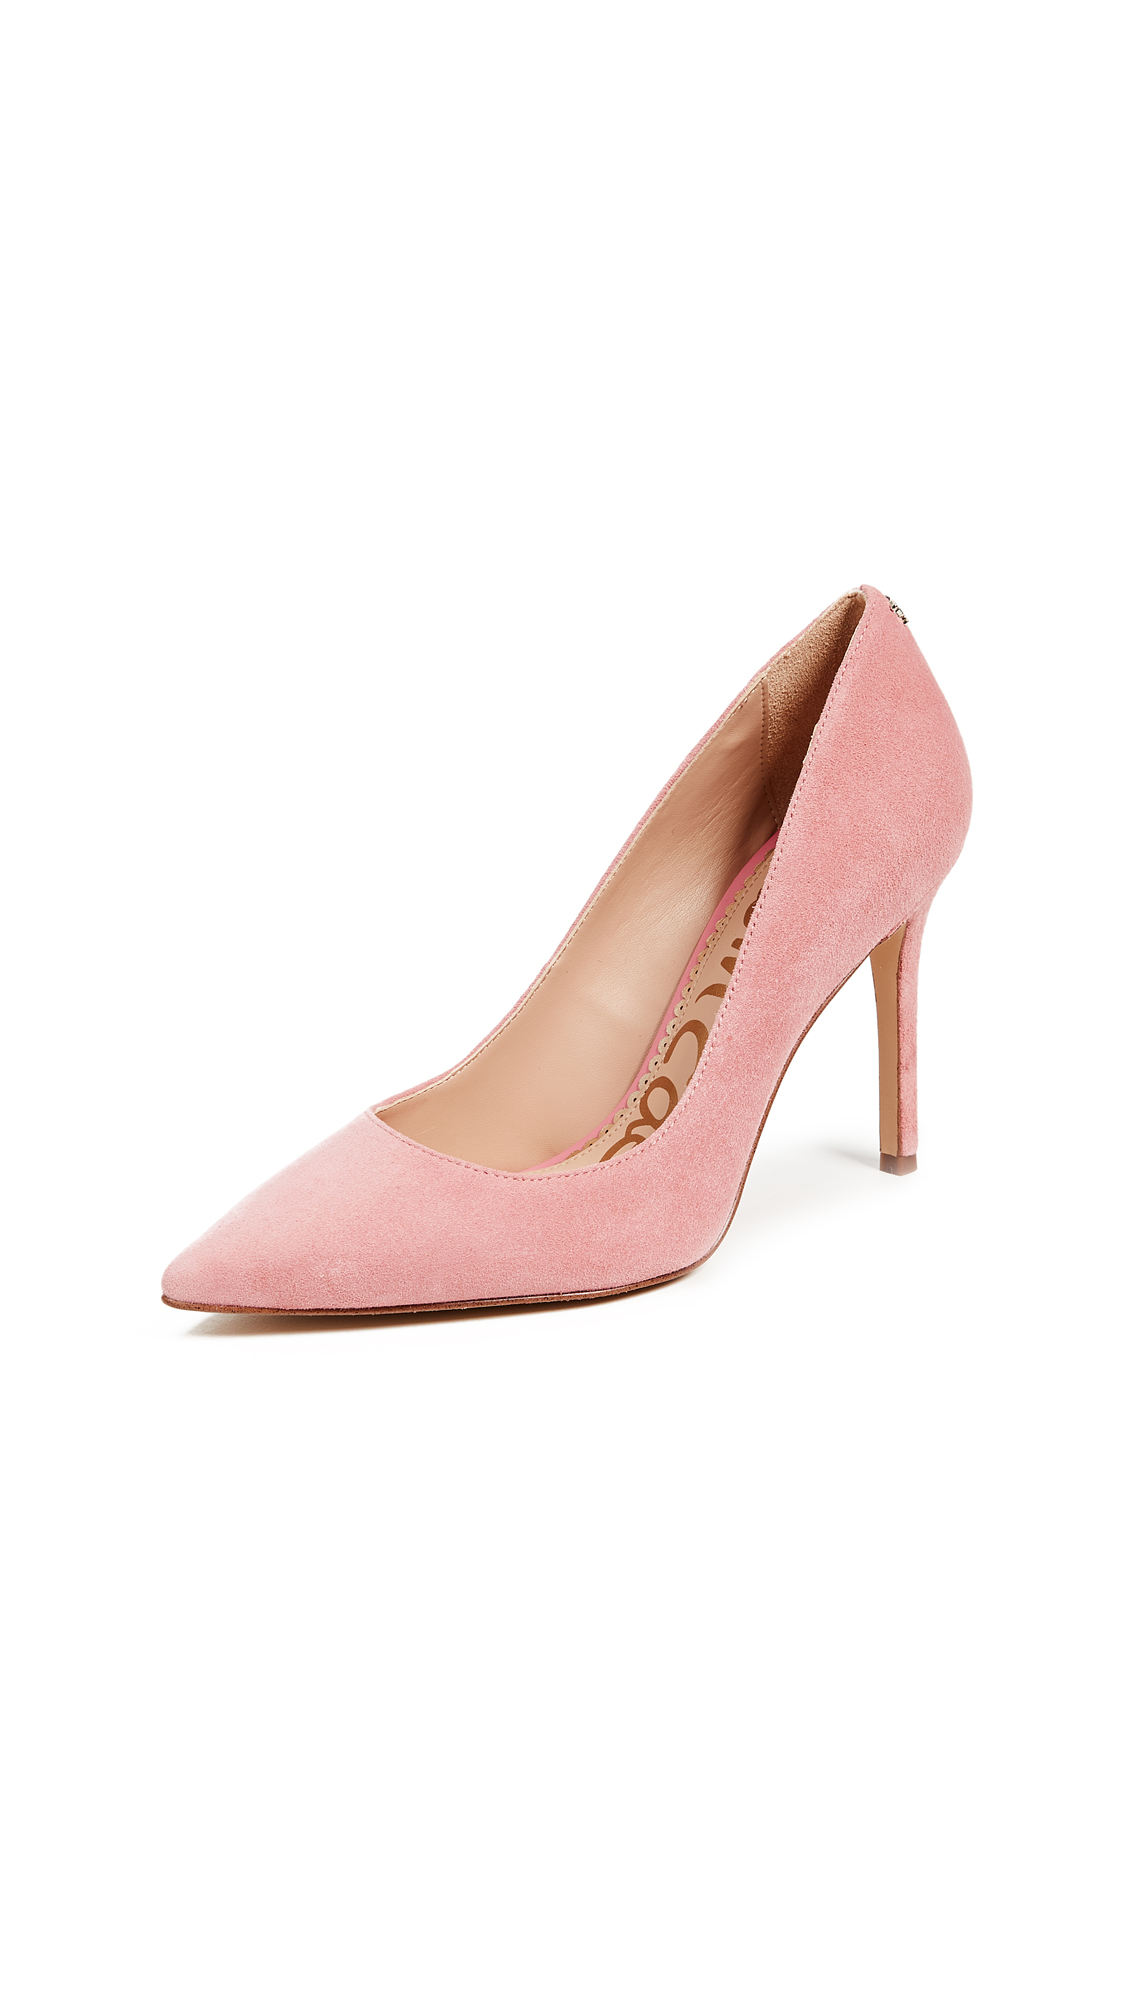 Sam Edelman Hazel Pumps - Pink Lemonade